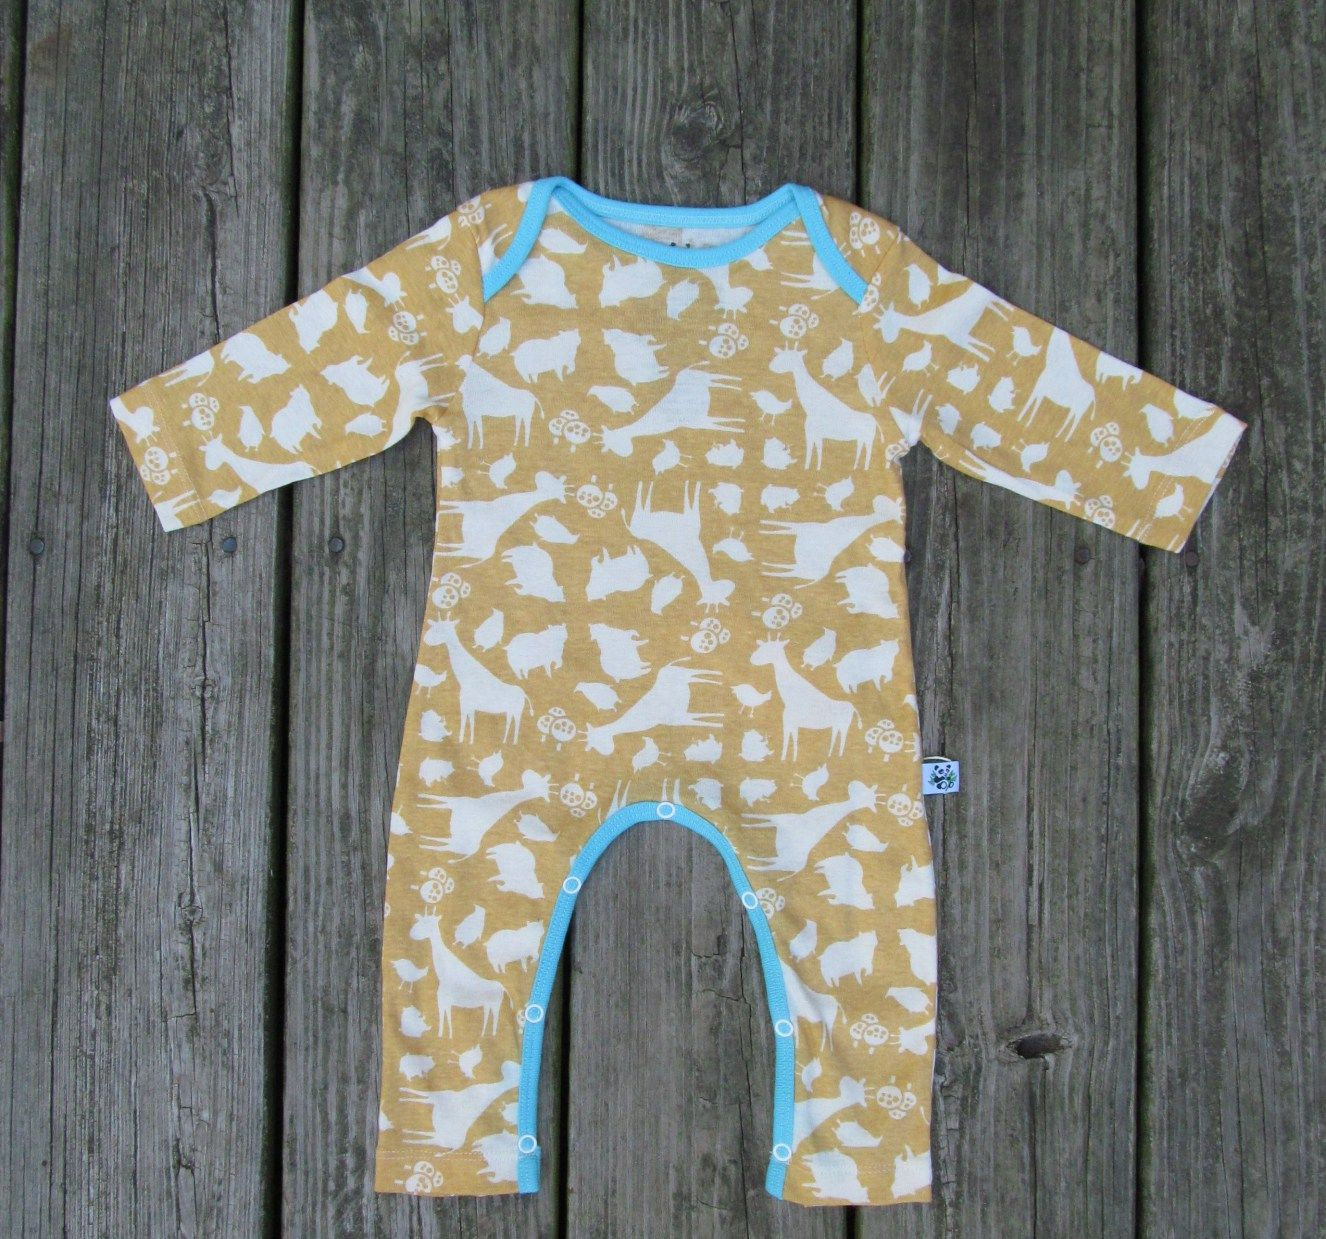 Fall baby romper sleeper made of organic cotton material in the cutest mustard yellow.  Adorable animal print with vibrant trim too cute for winter!! Baby Size 3-6 6-12 Boys Girls Infants Newborns!